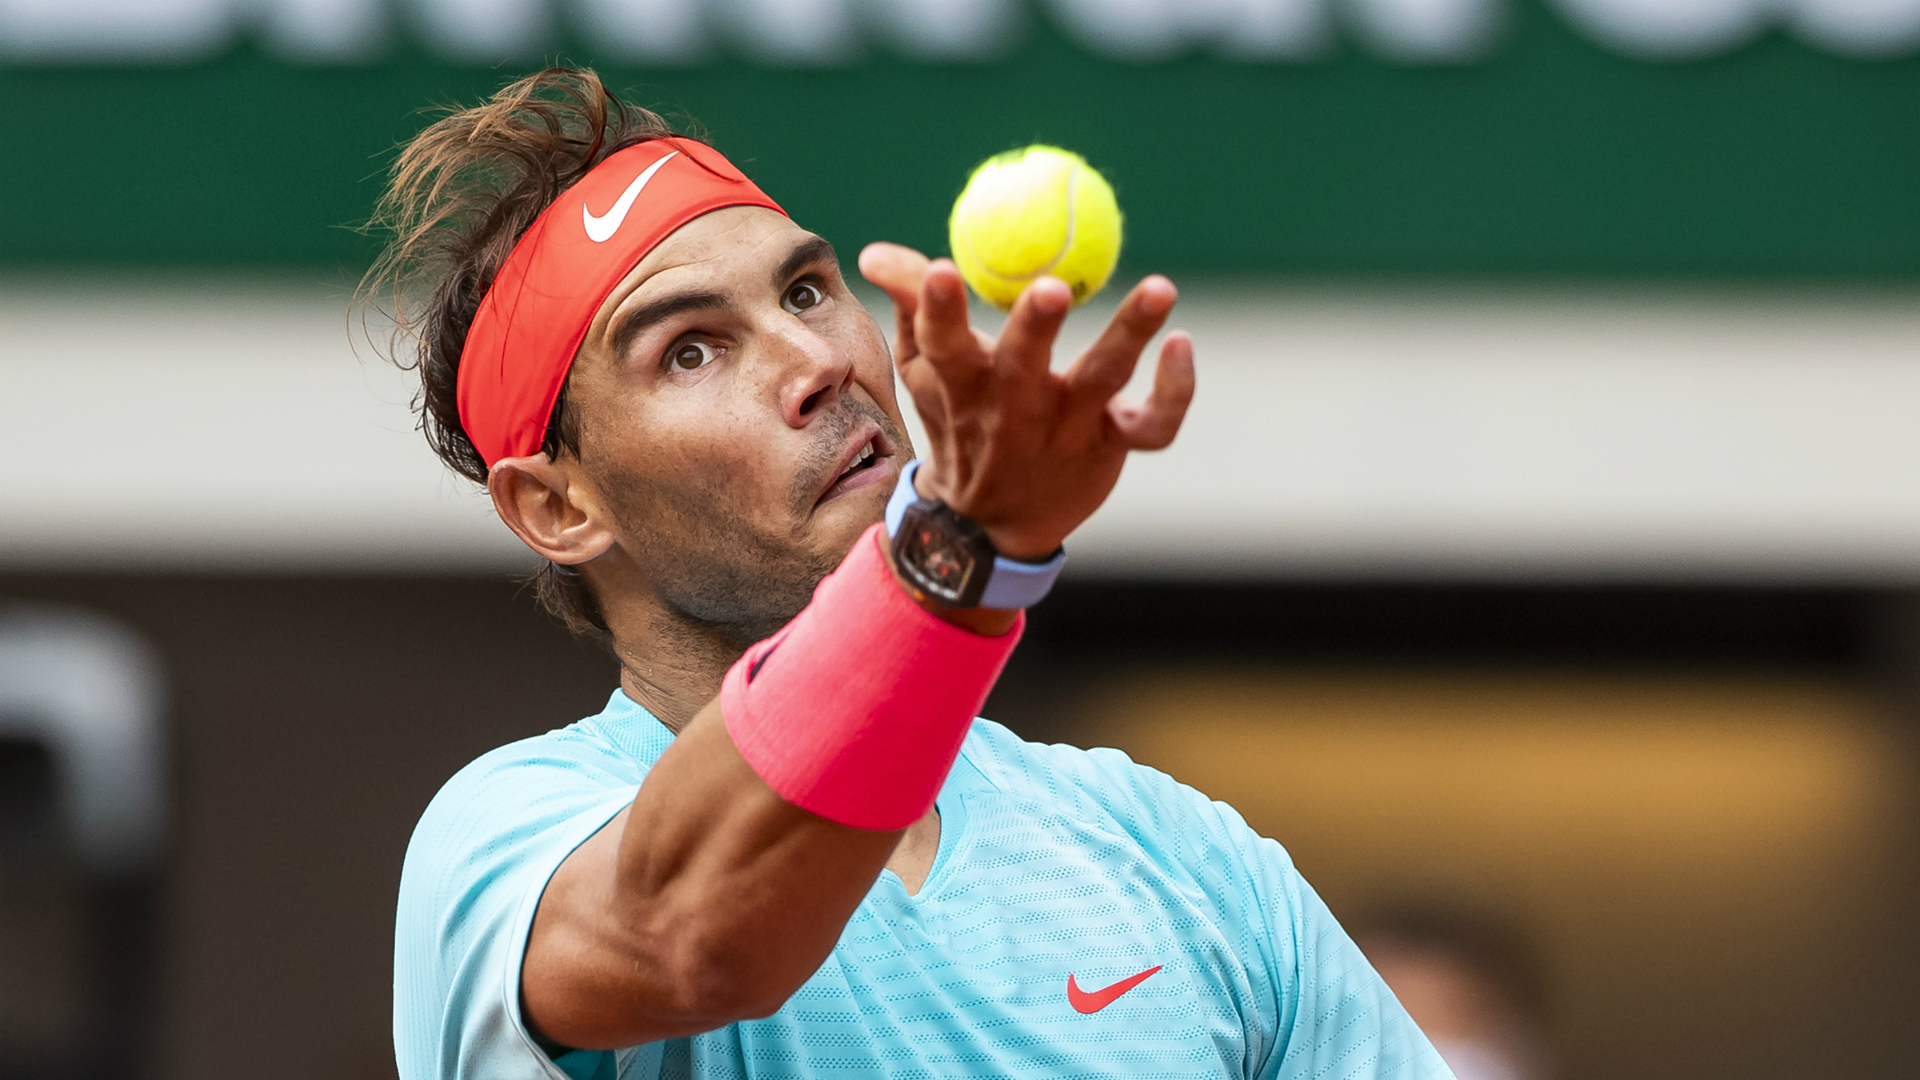 French Open Rafael Nadal Wins In Style As Thiem Wawrinka And Zverev Advance At Roland Garros Sporting News Australia